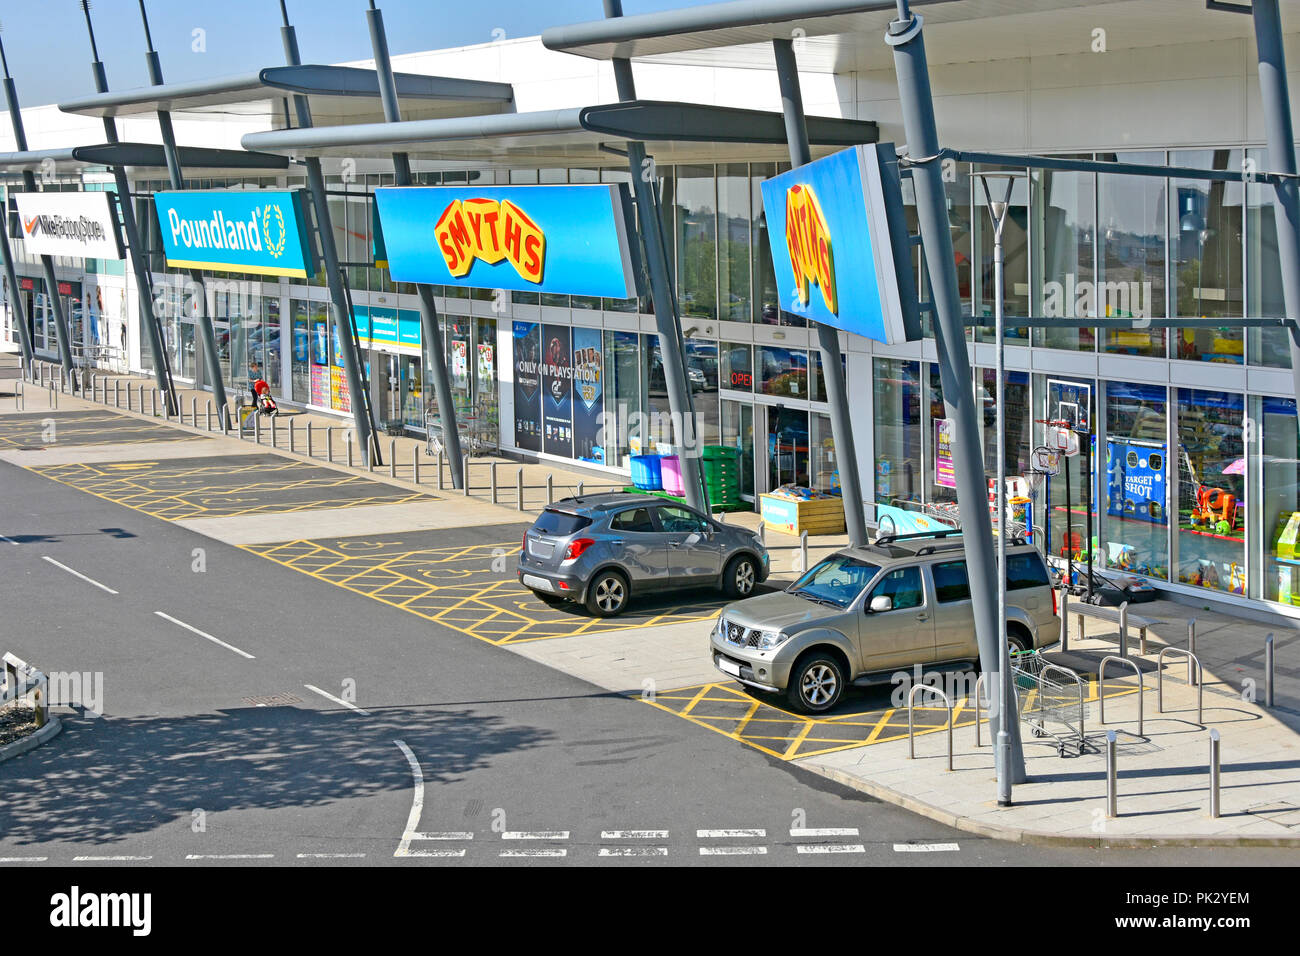 Looking down on Smyths Toys & Poundland shopping stores & wheelchair user disability parking bay space Lakeside retail park Thurrock Essex England UK - Stock Image